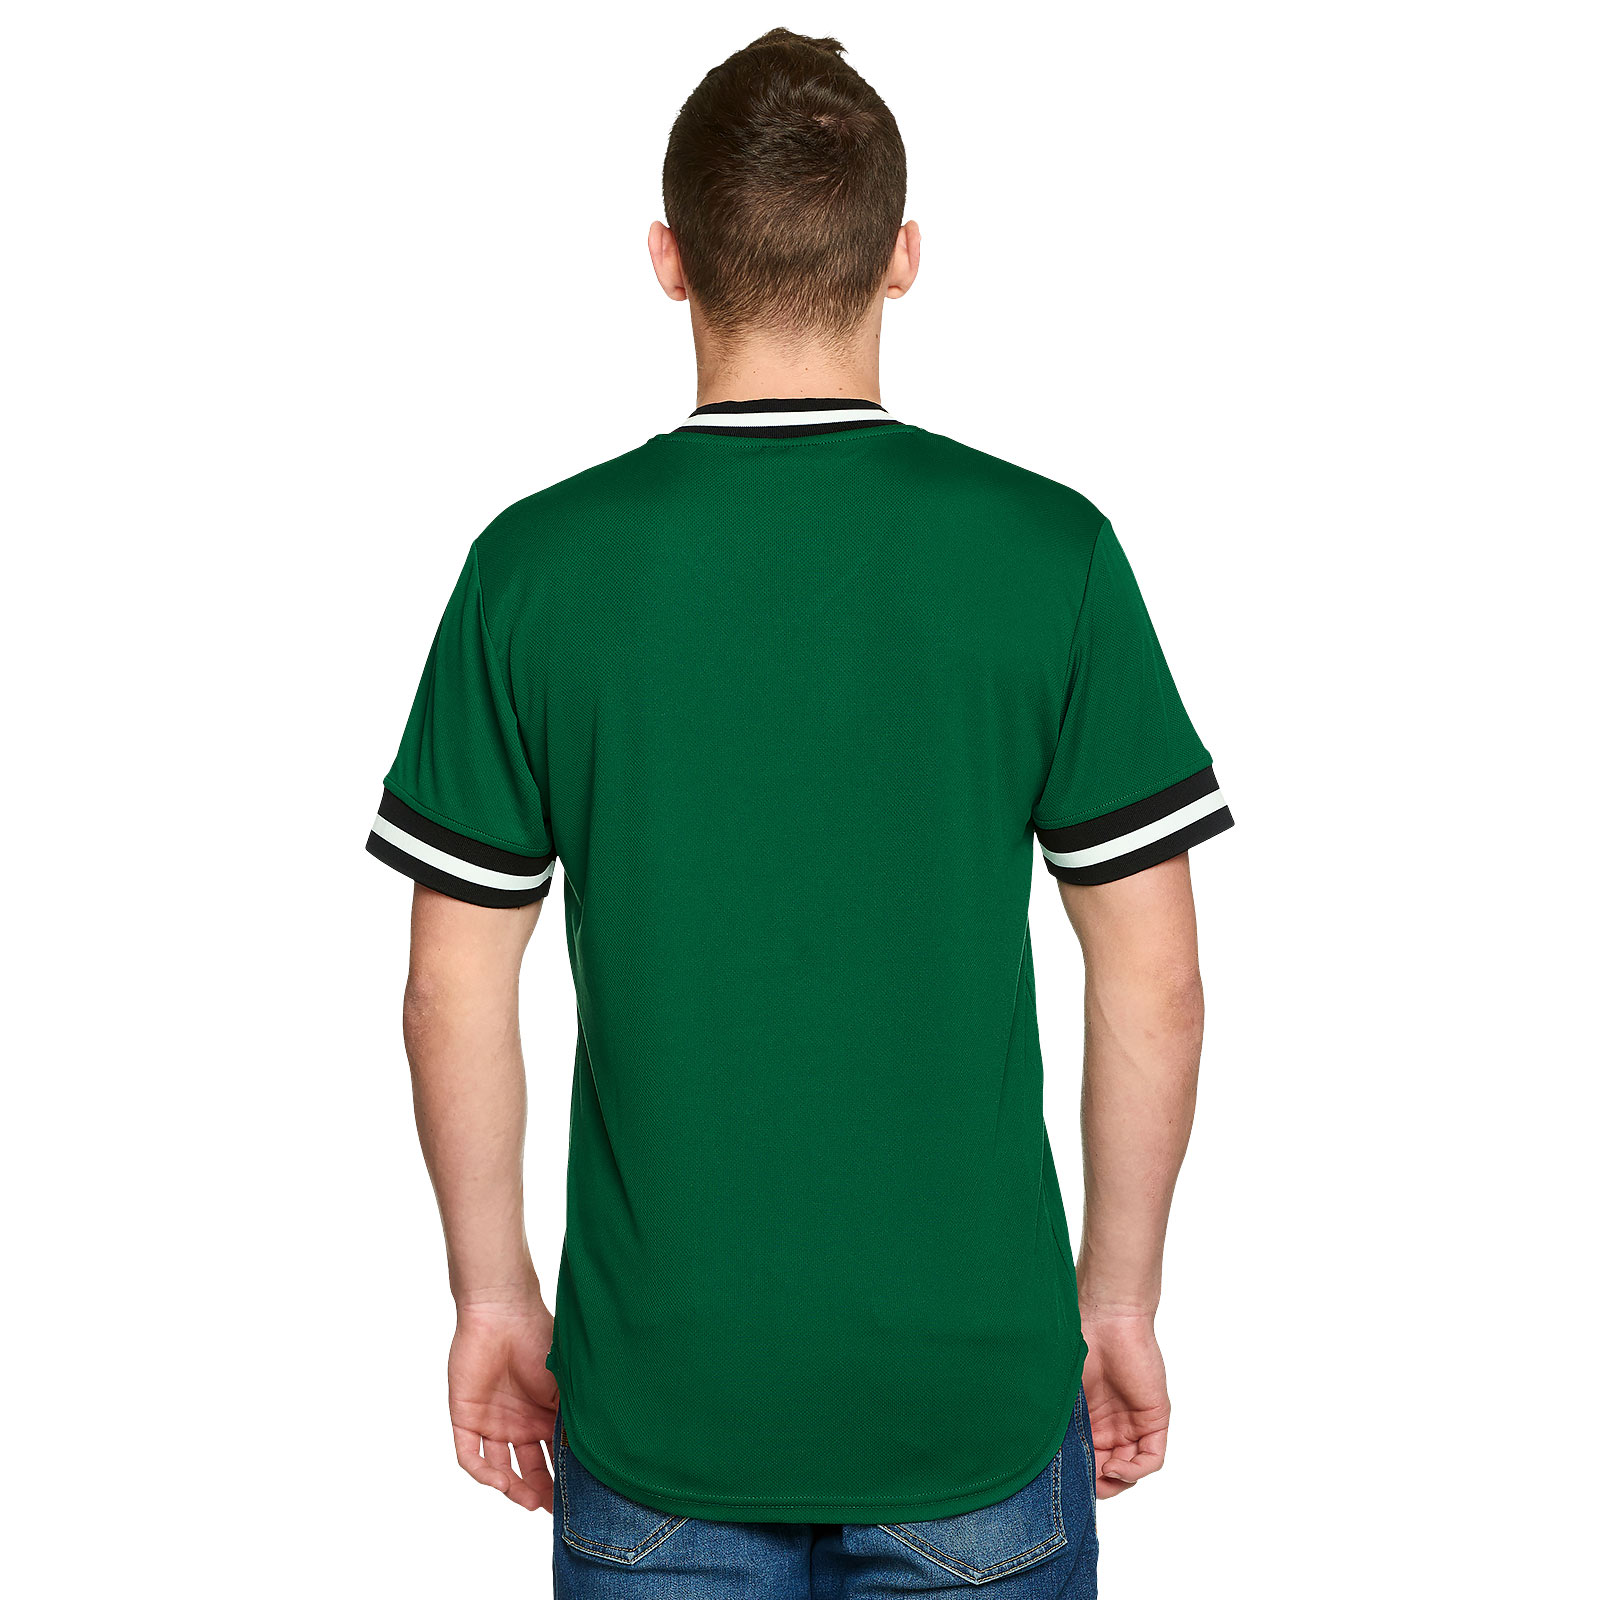 Harry Potter - Quidditch Team Slytherin T-Shirt